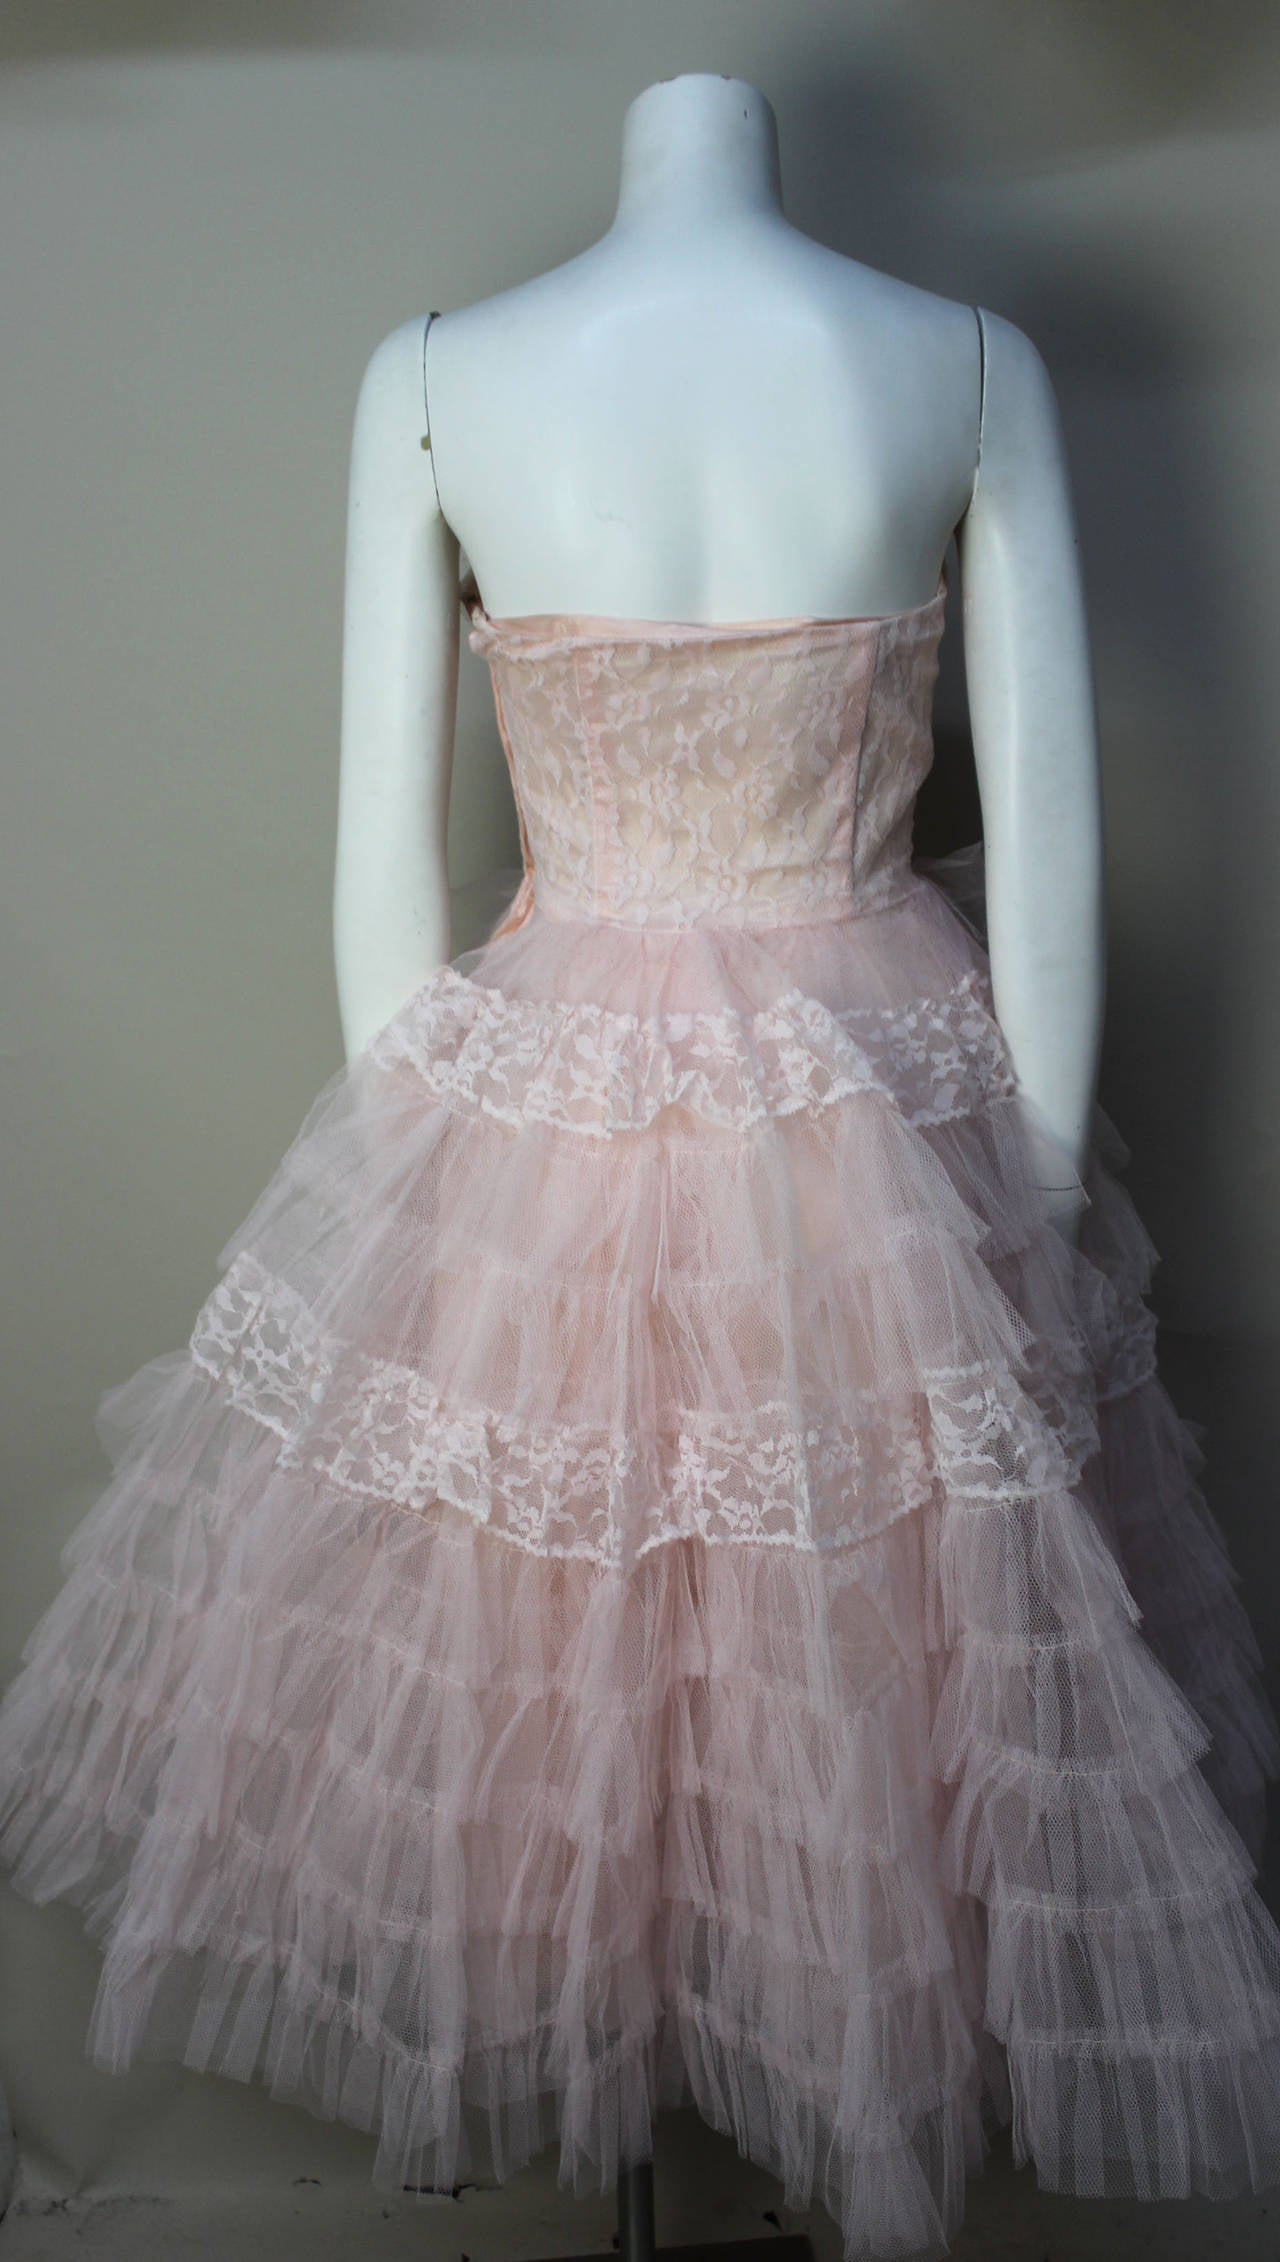 Stunning Never Worn 1950s Pink Tulle Evening Dress with Lace Bolero 5